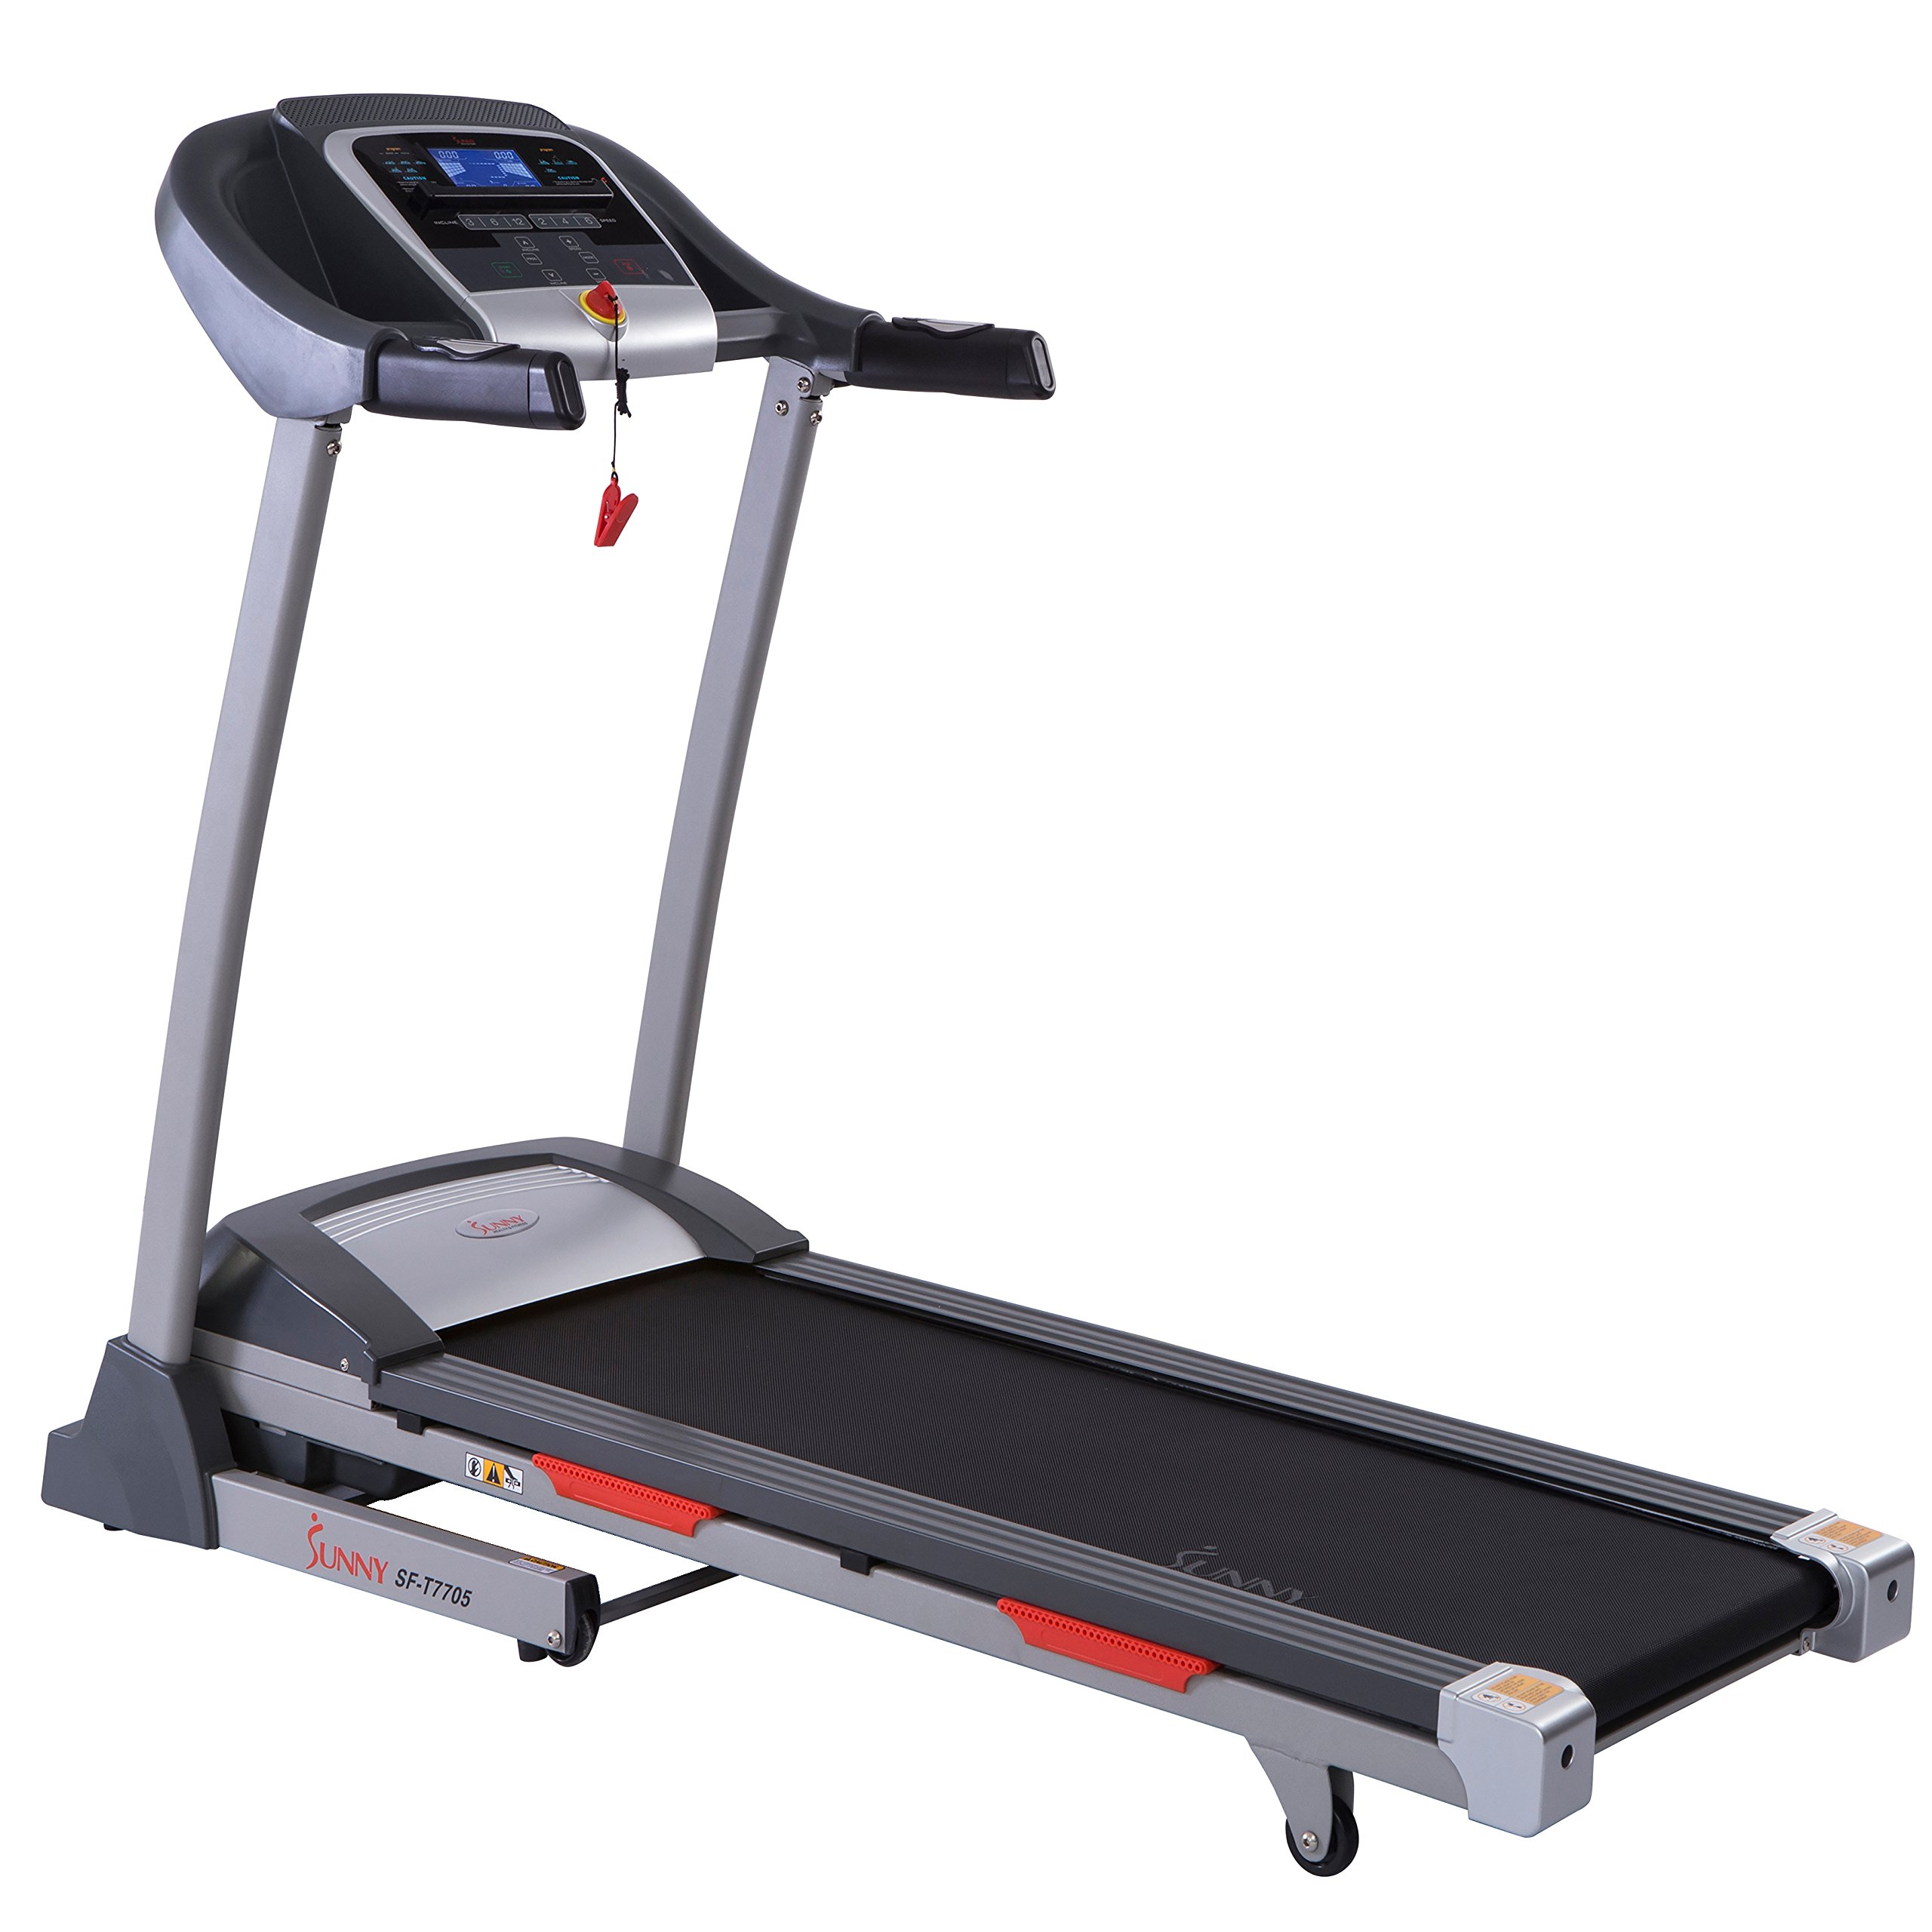 Sunny Health & Fitness Portable Treadmill with Auto Incline, LCD, Smart APP and Shock Absorber - SF-T7705 by Sunny Health & Fitness